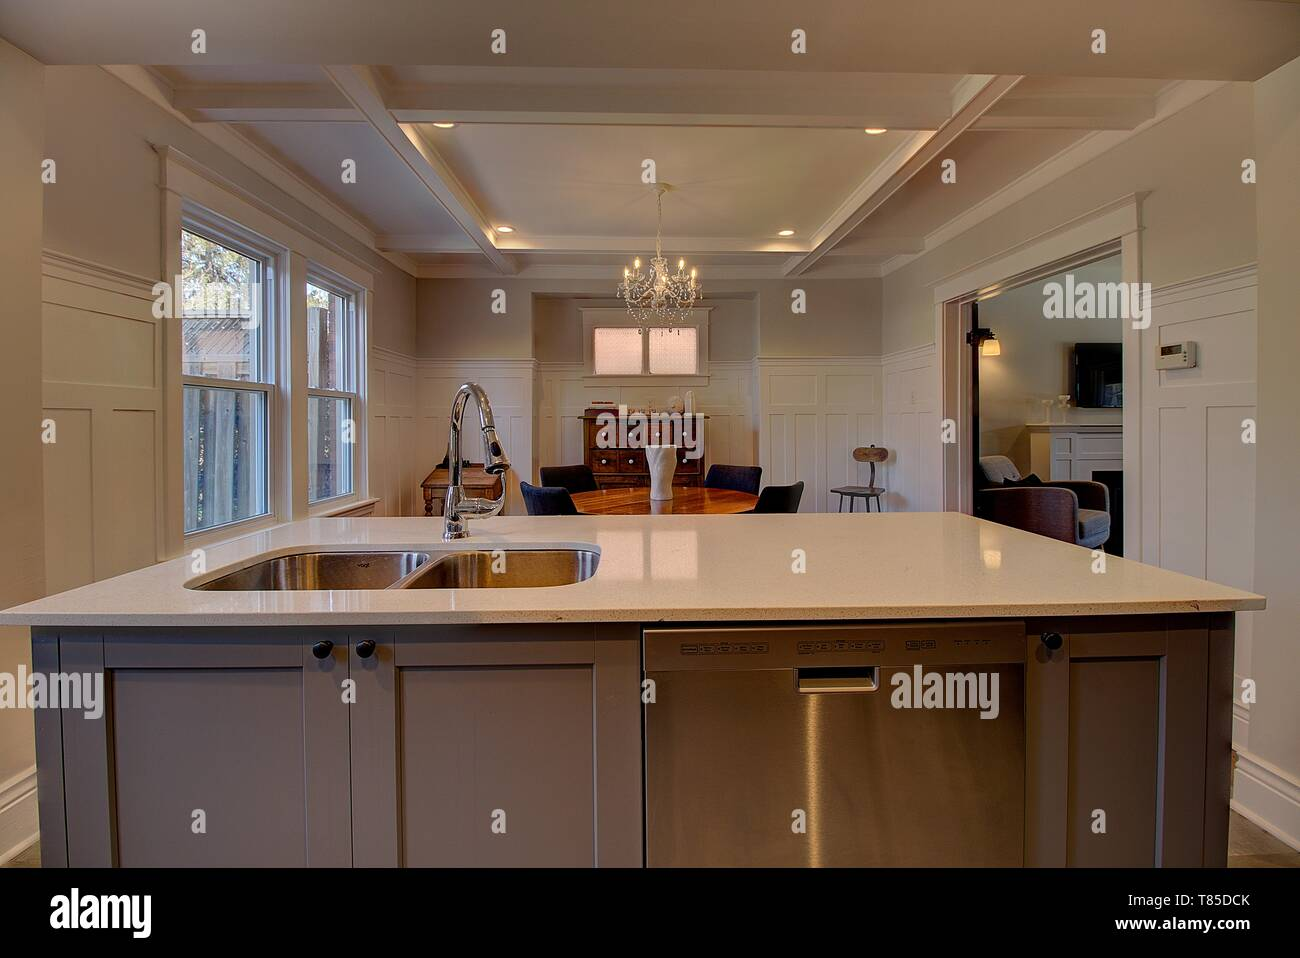 Kitchen Remodeling With New Cabinetry Pot Lights Coffered Ceiling Stock Photo Alamy